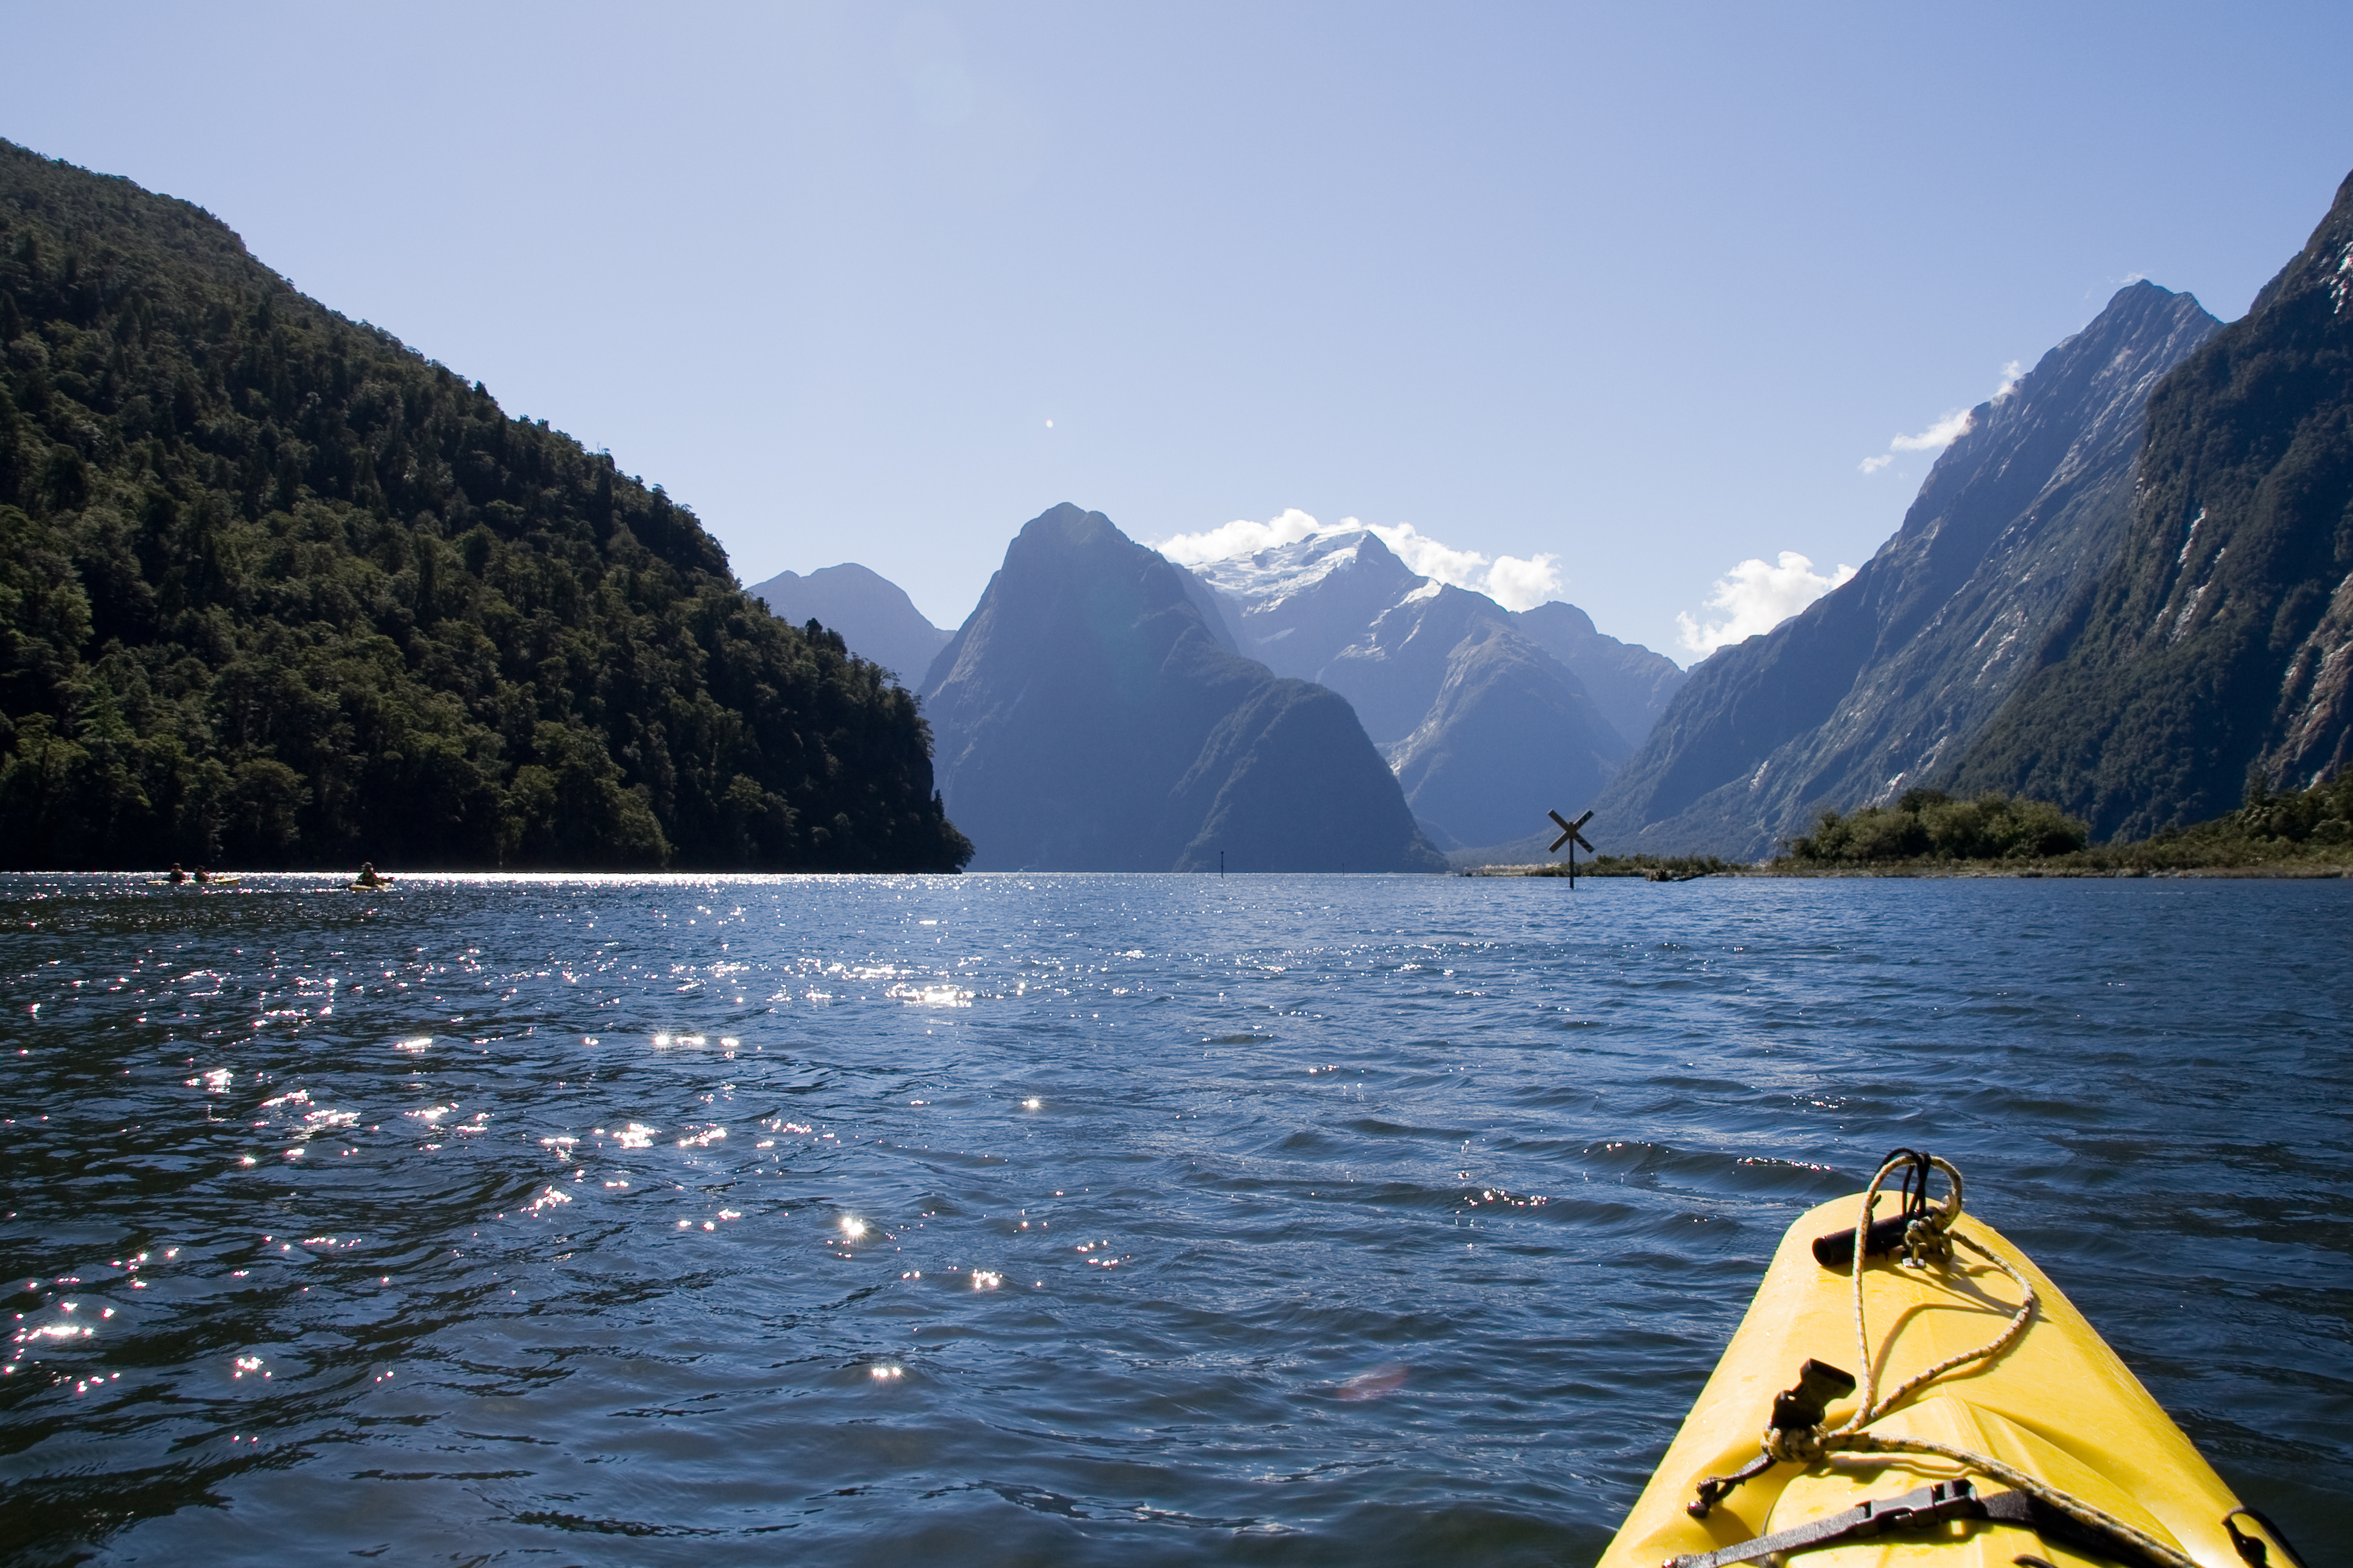 3.Kayaking in Milford Sound